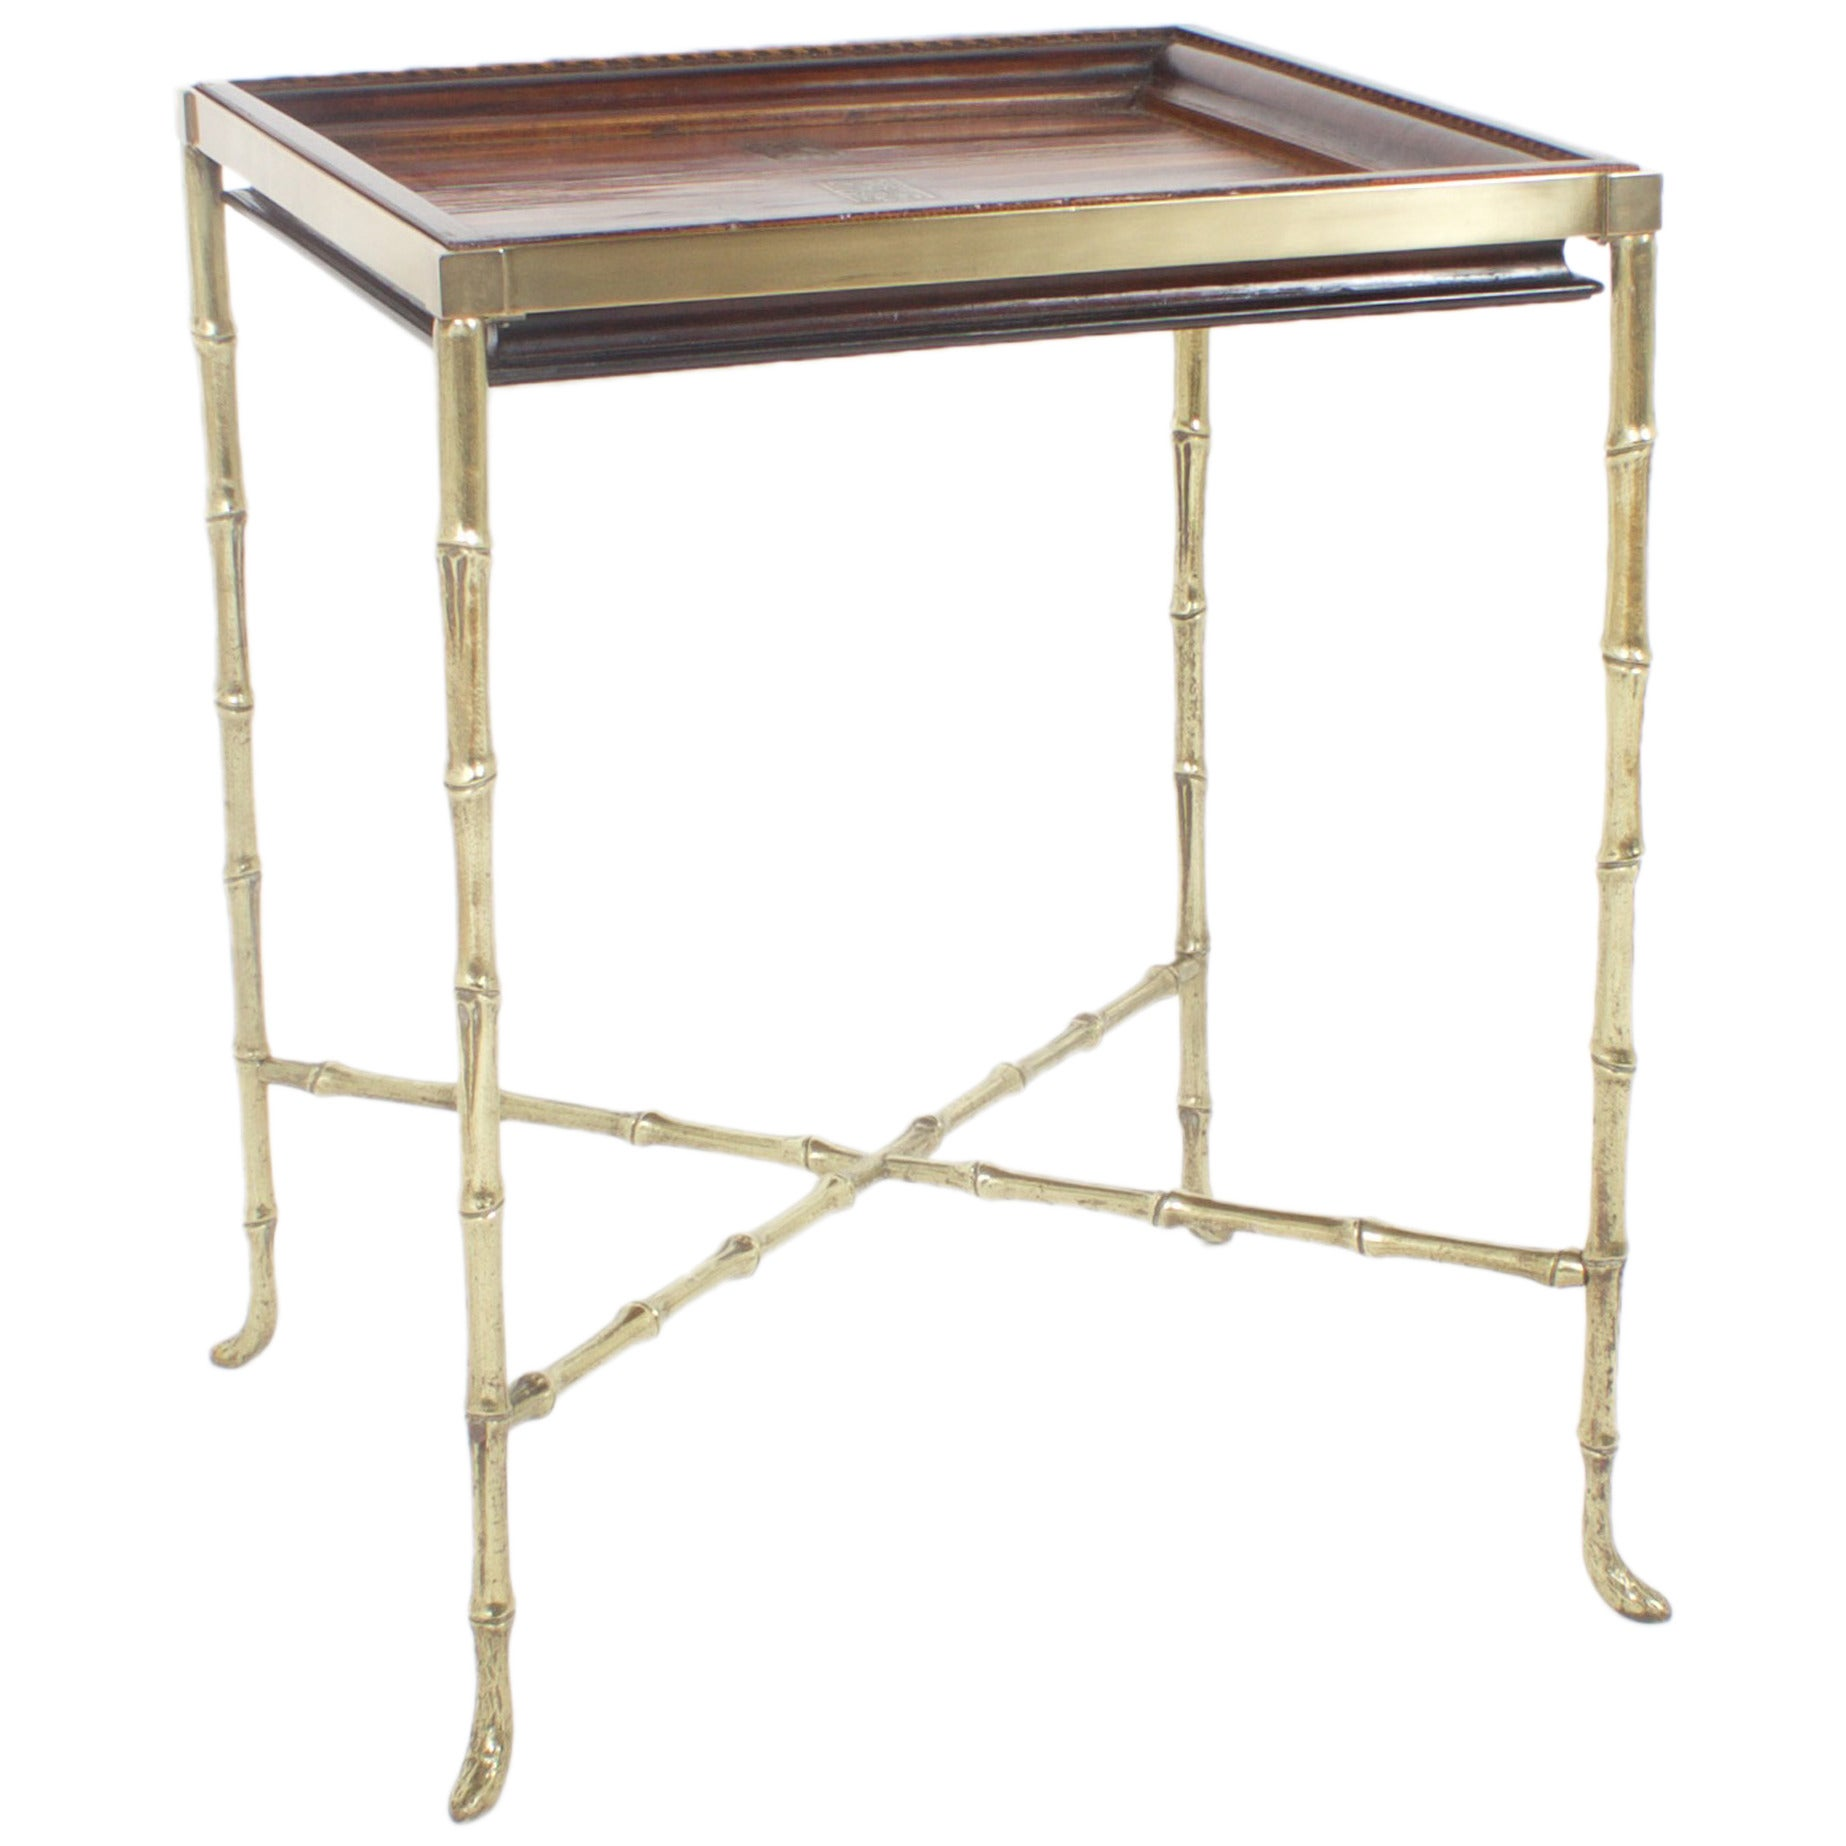 Faux Bamboo Brass and Wood Games Table